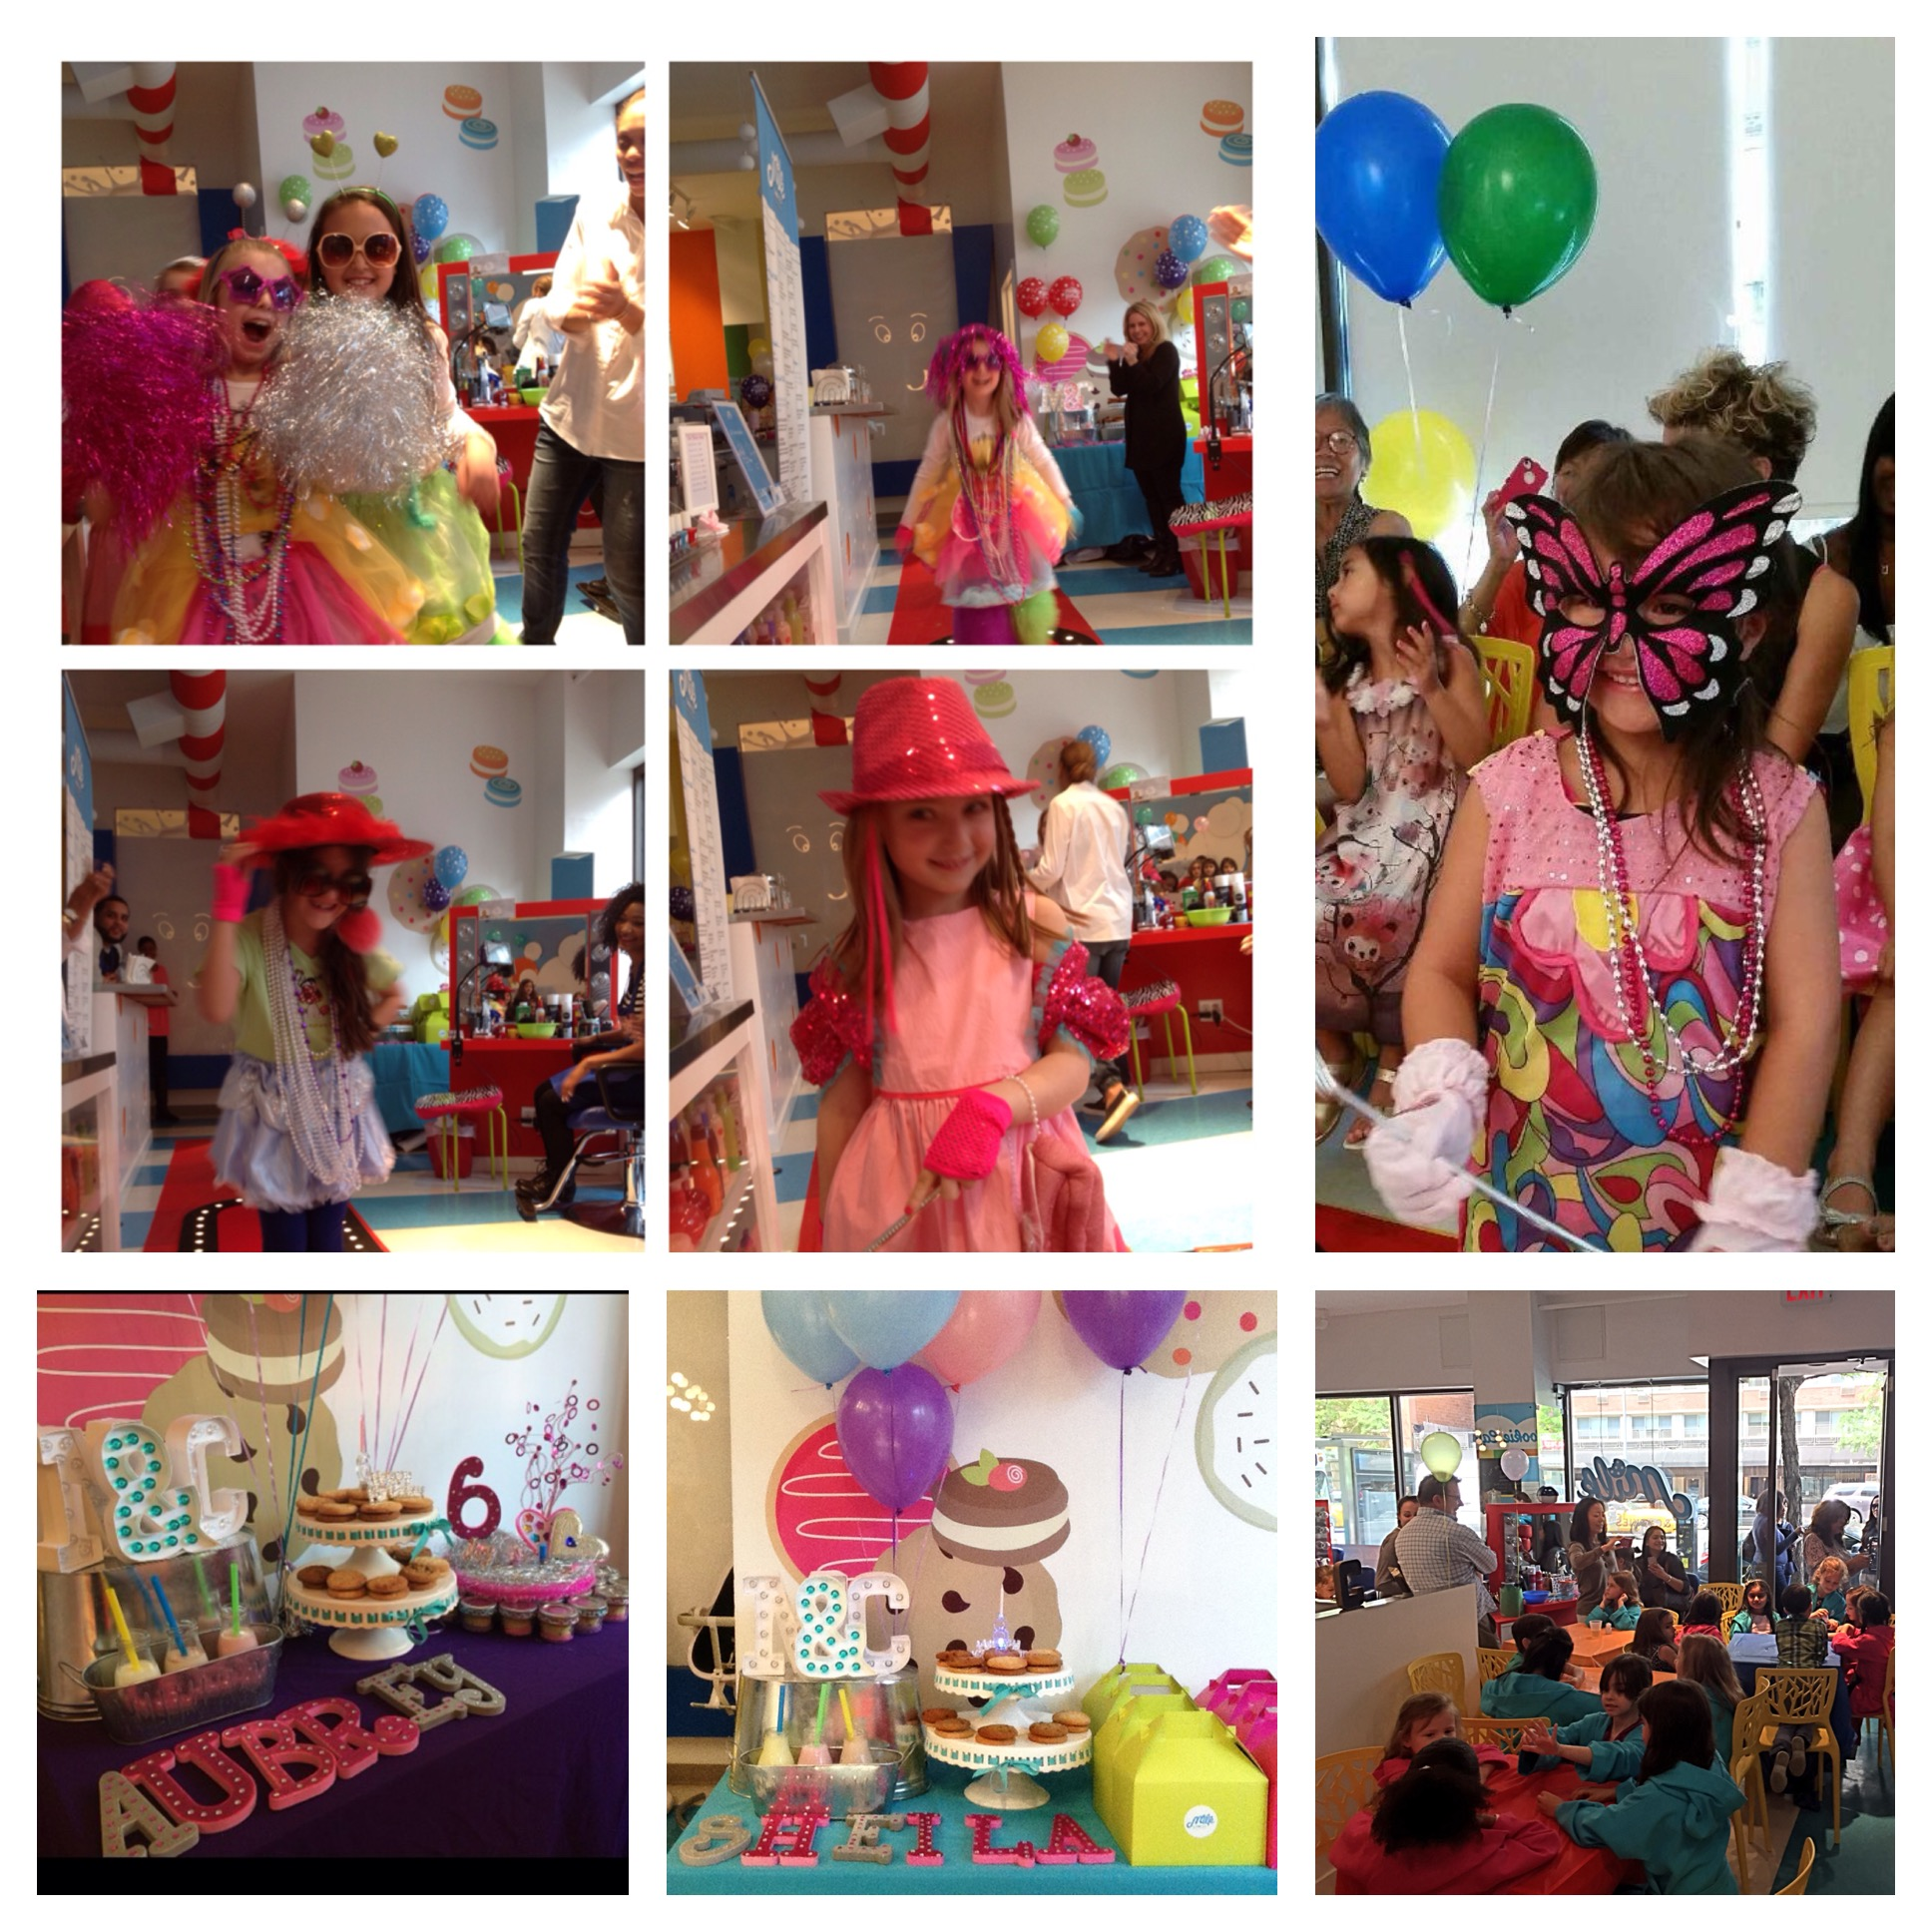 Milk & Cookies Kids Spa And Salon | Booked Parties